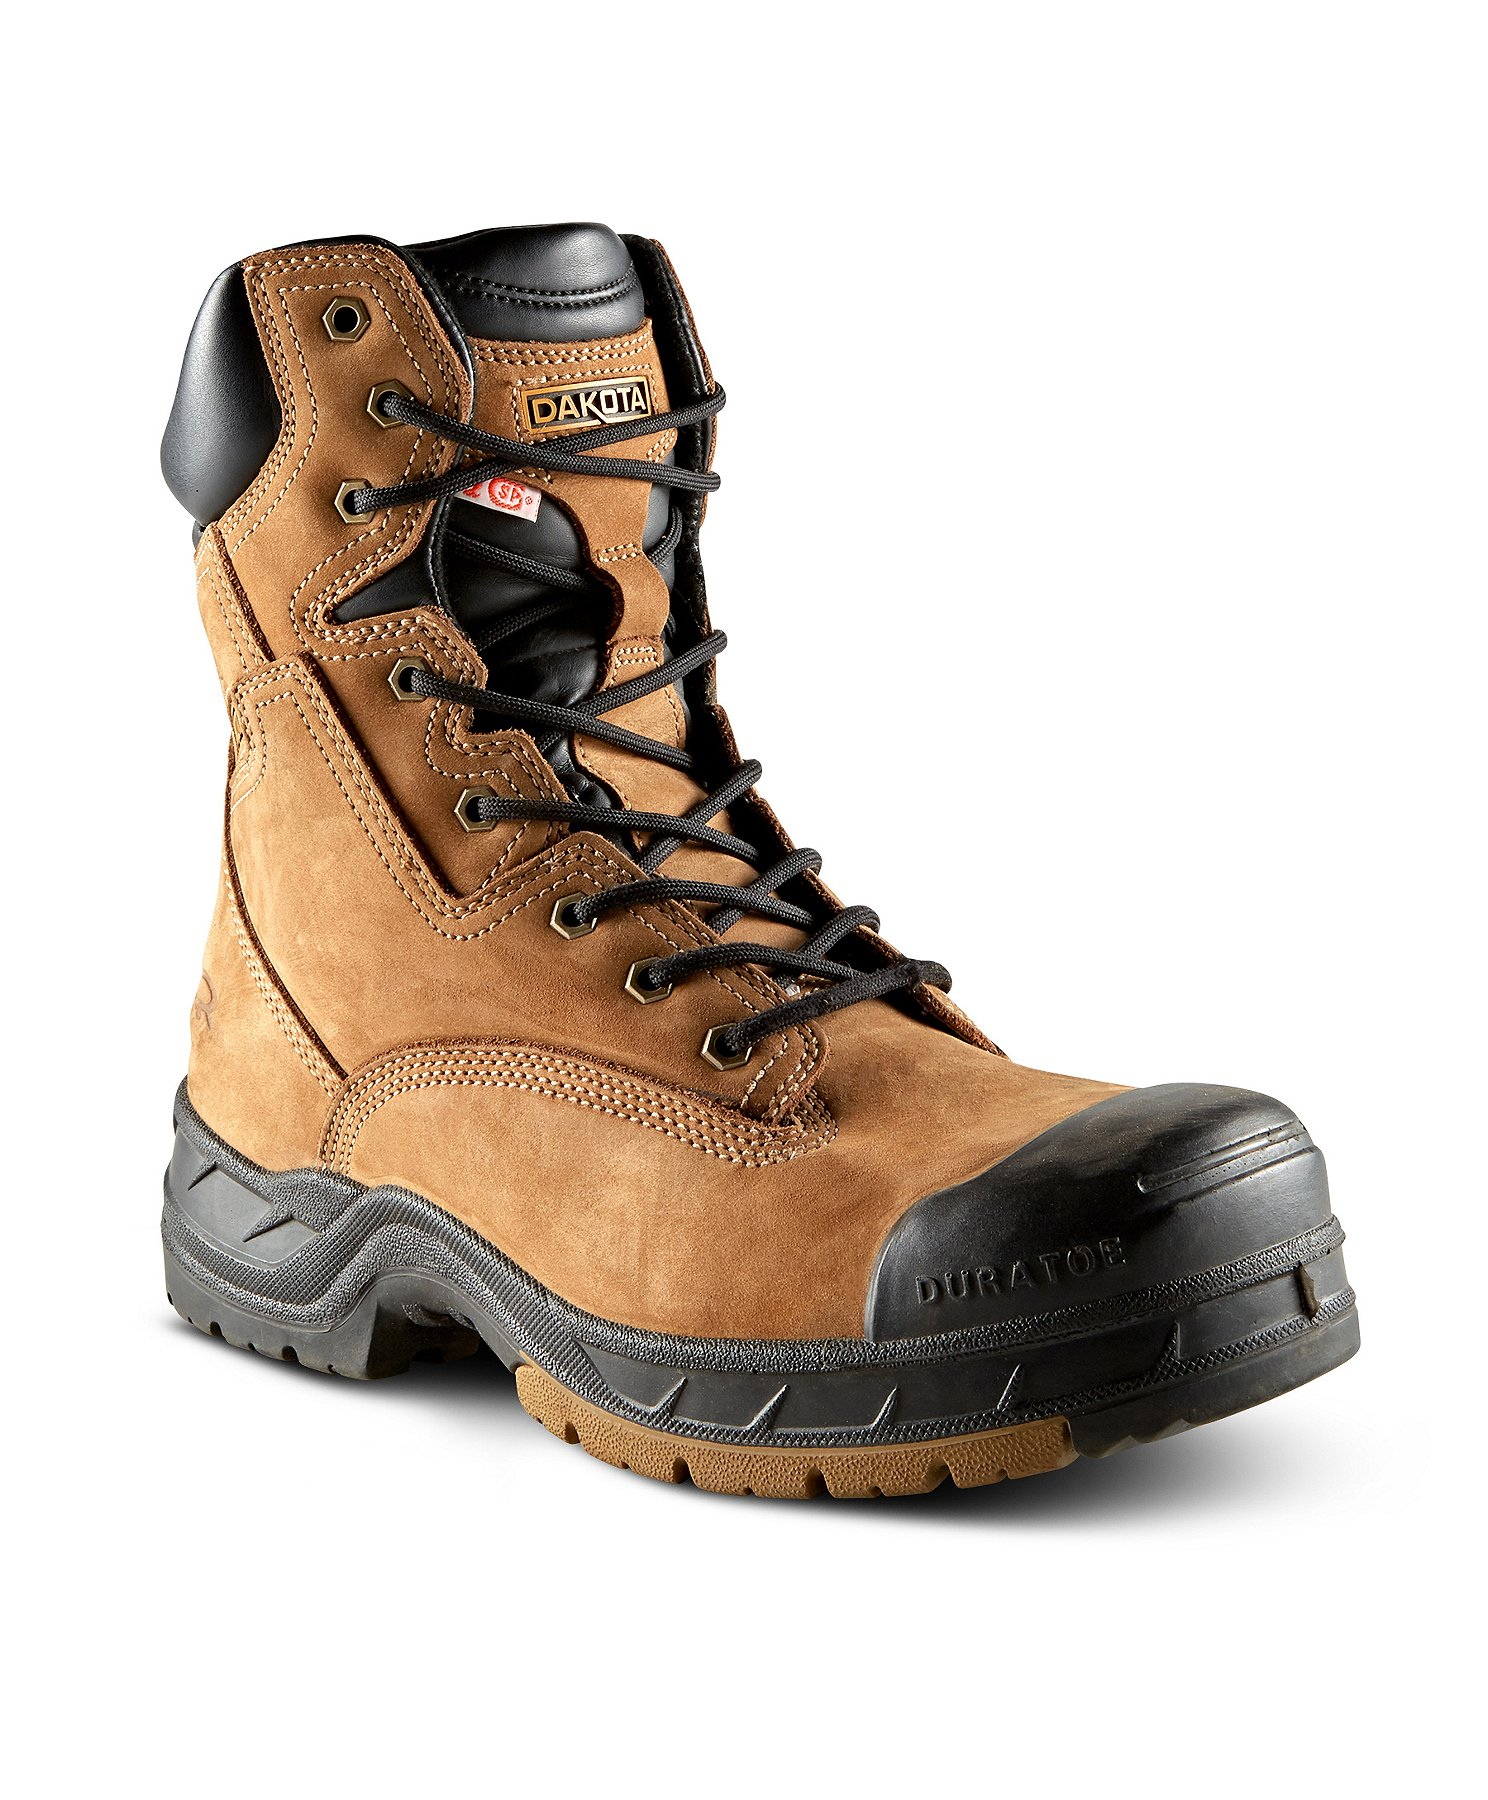 Mens Safety work Shoes Steel Toe Boots welding protection US 7 8 9 10 11 12 13